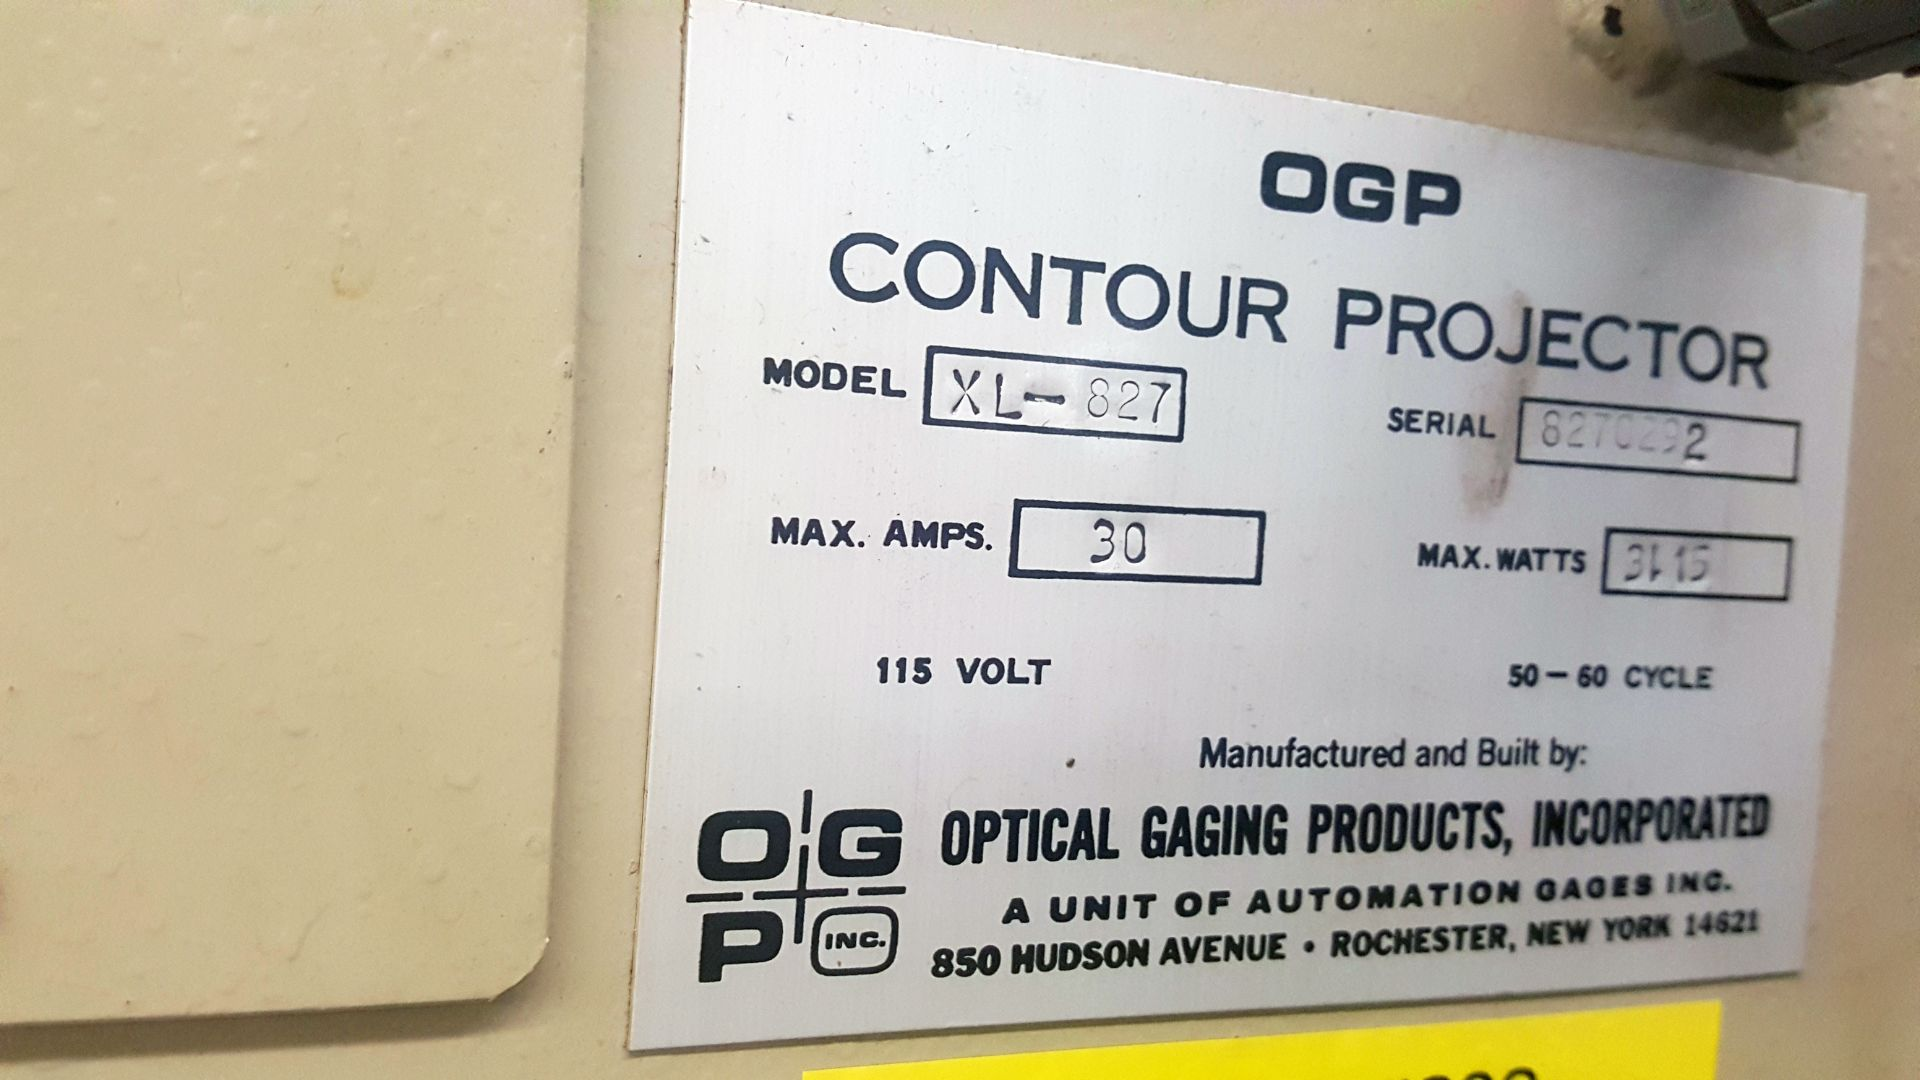 """Lot 8 - OGP 30"""" Optical Comparator Projector, Model IXL-827, XL30S, S/N 8270292, under power"""